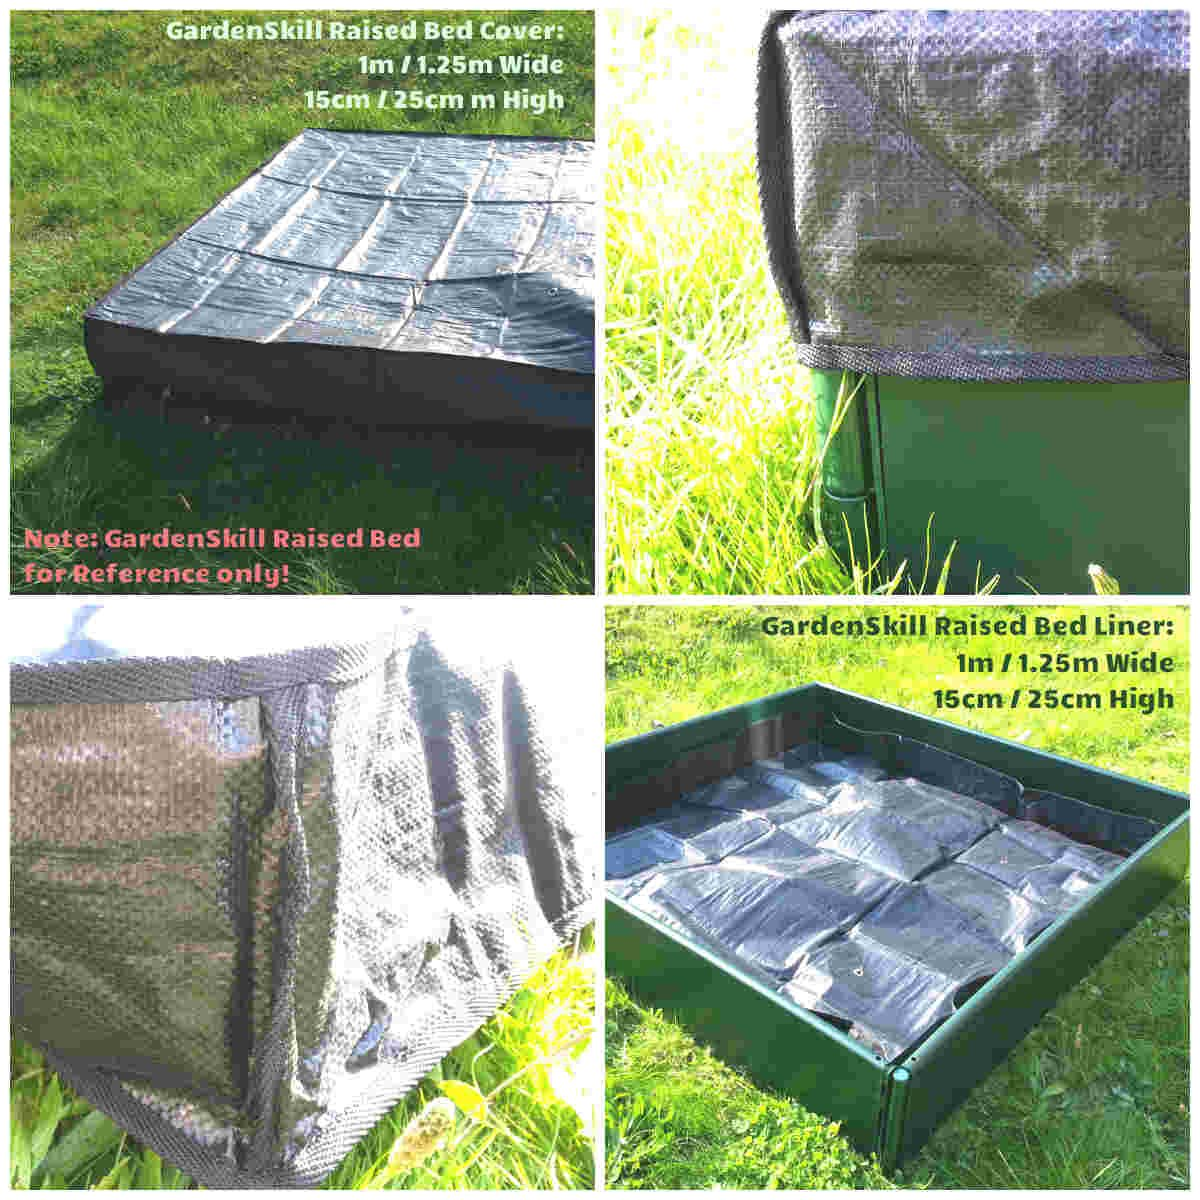 GardenSkill 2in1 Raised Bed Liner / Cover (15cm High x 1m Long x 1m Wide)